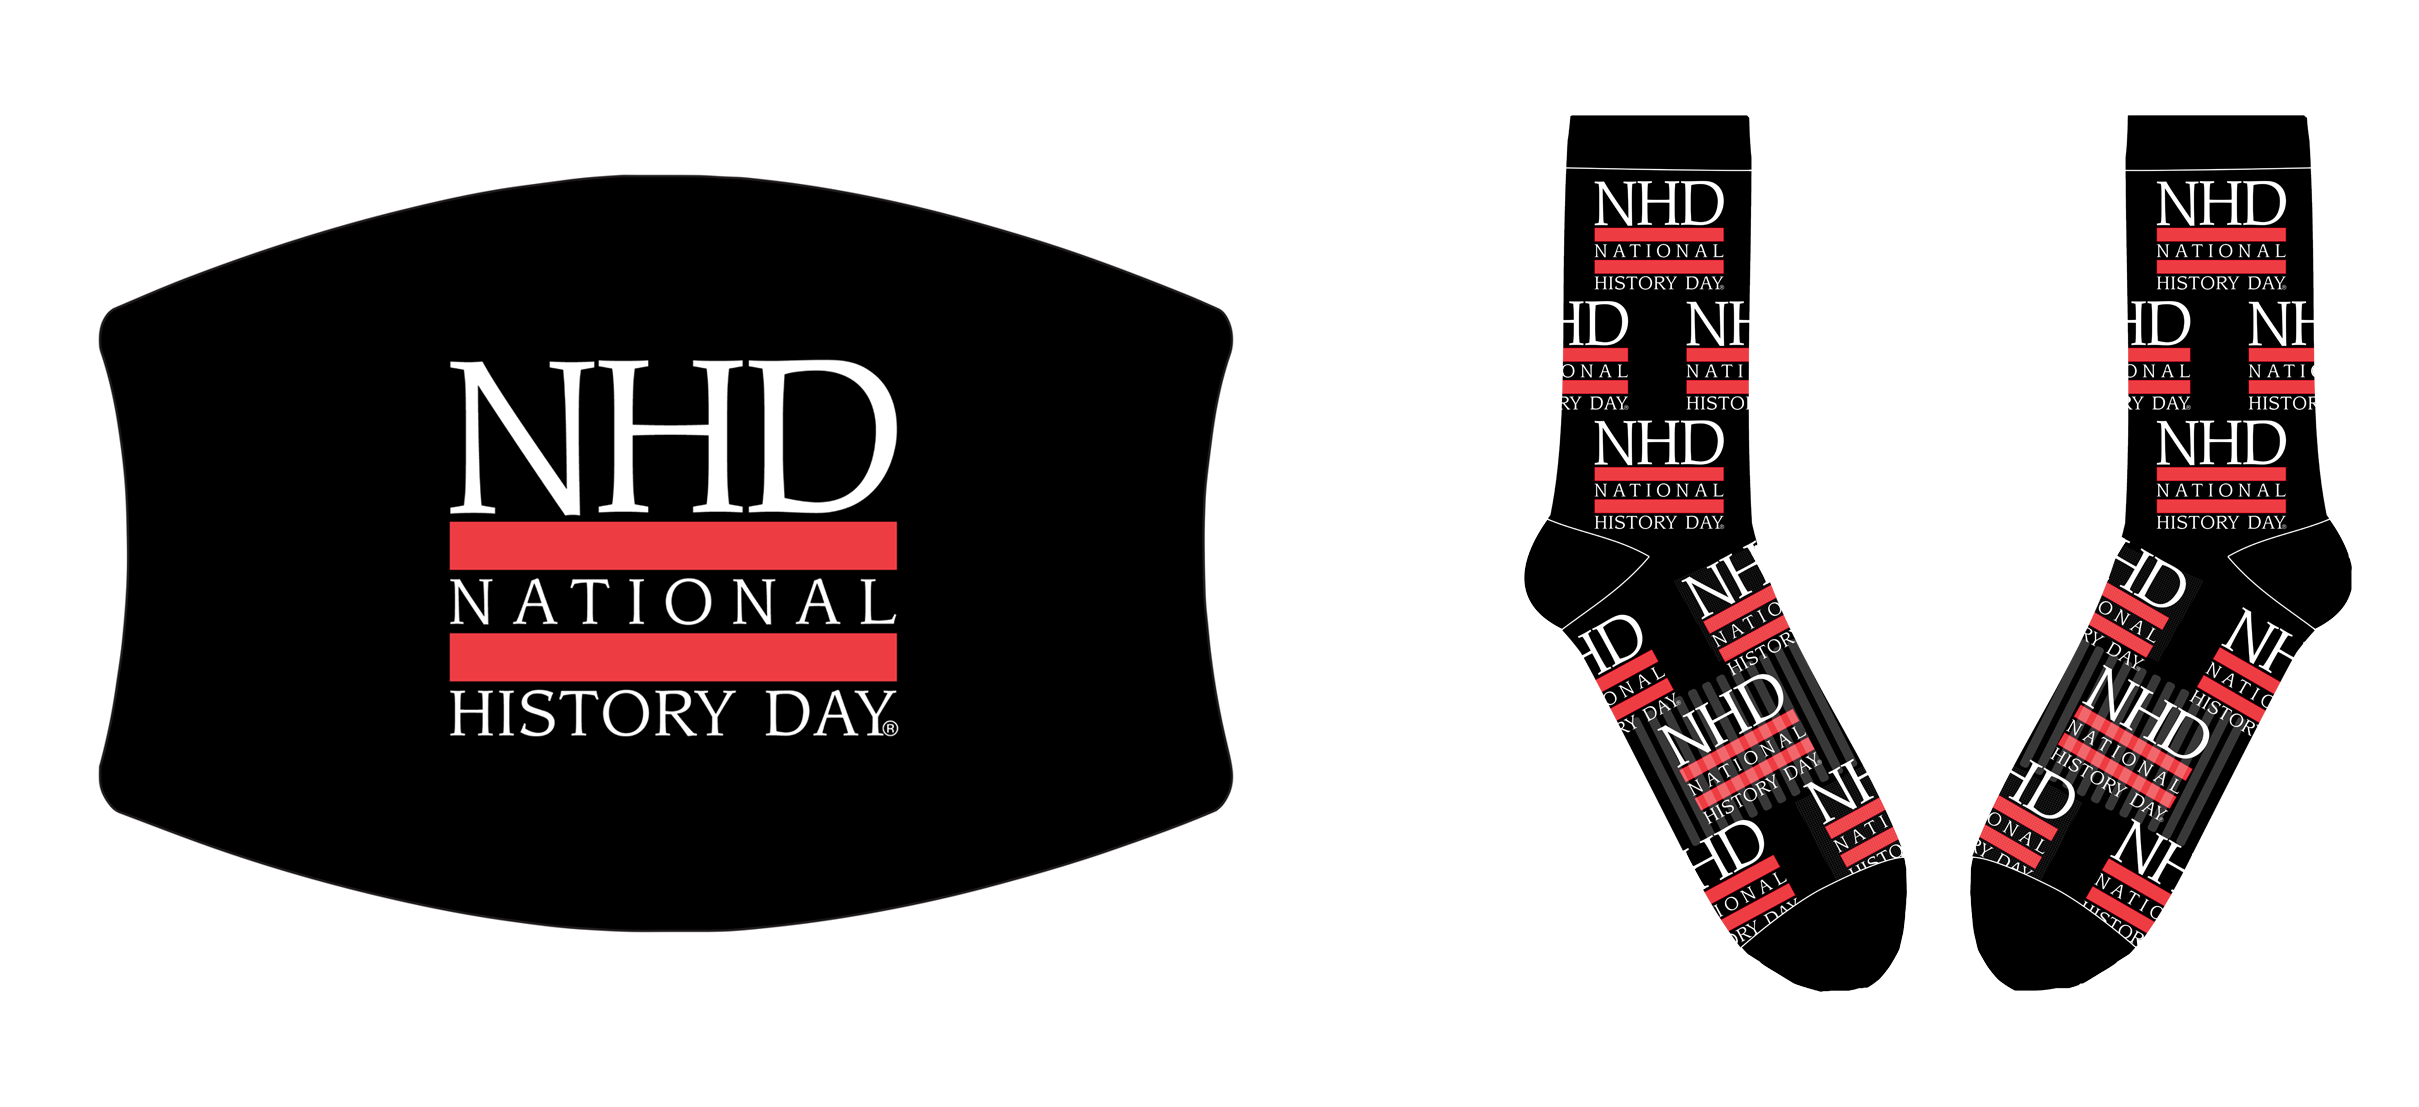 NHD Logo Face Mask and Socks